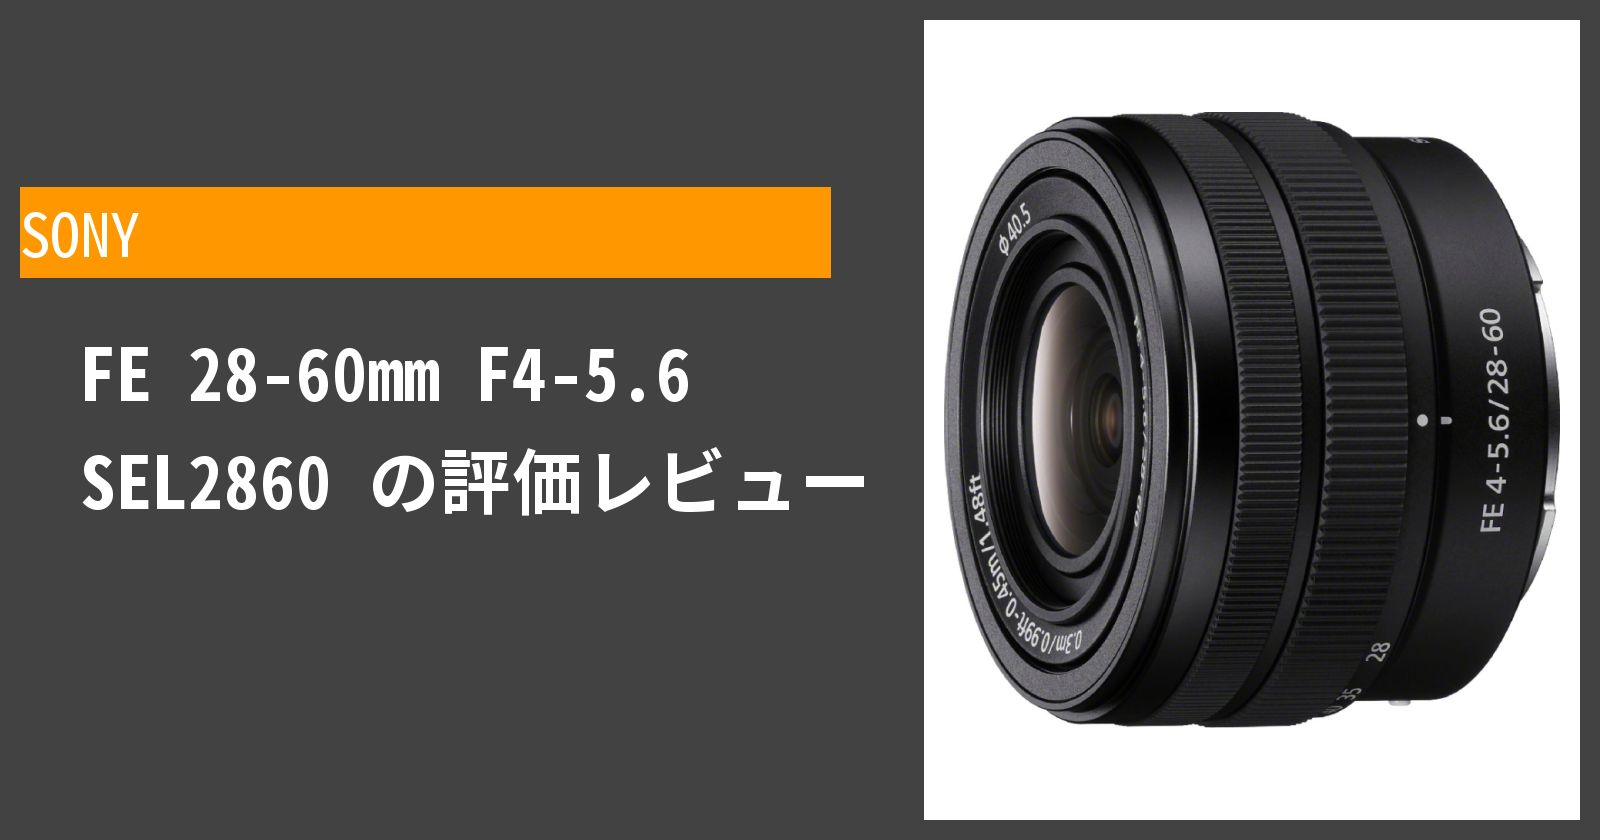 FE 28-60mm F4-5.6 SEL2860を徹底評価